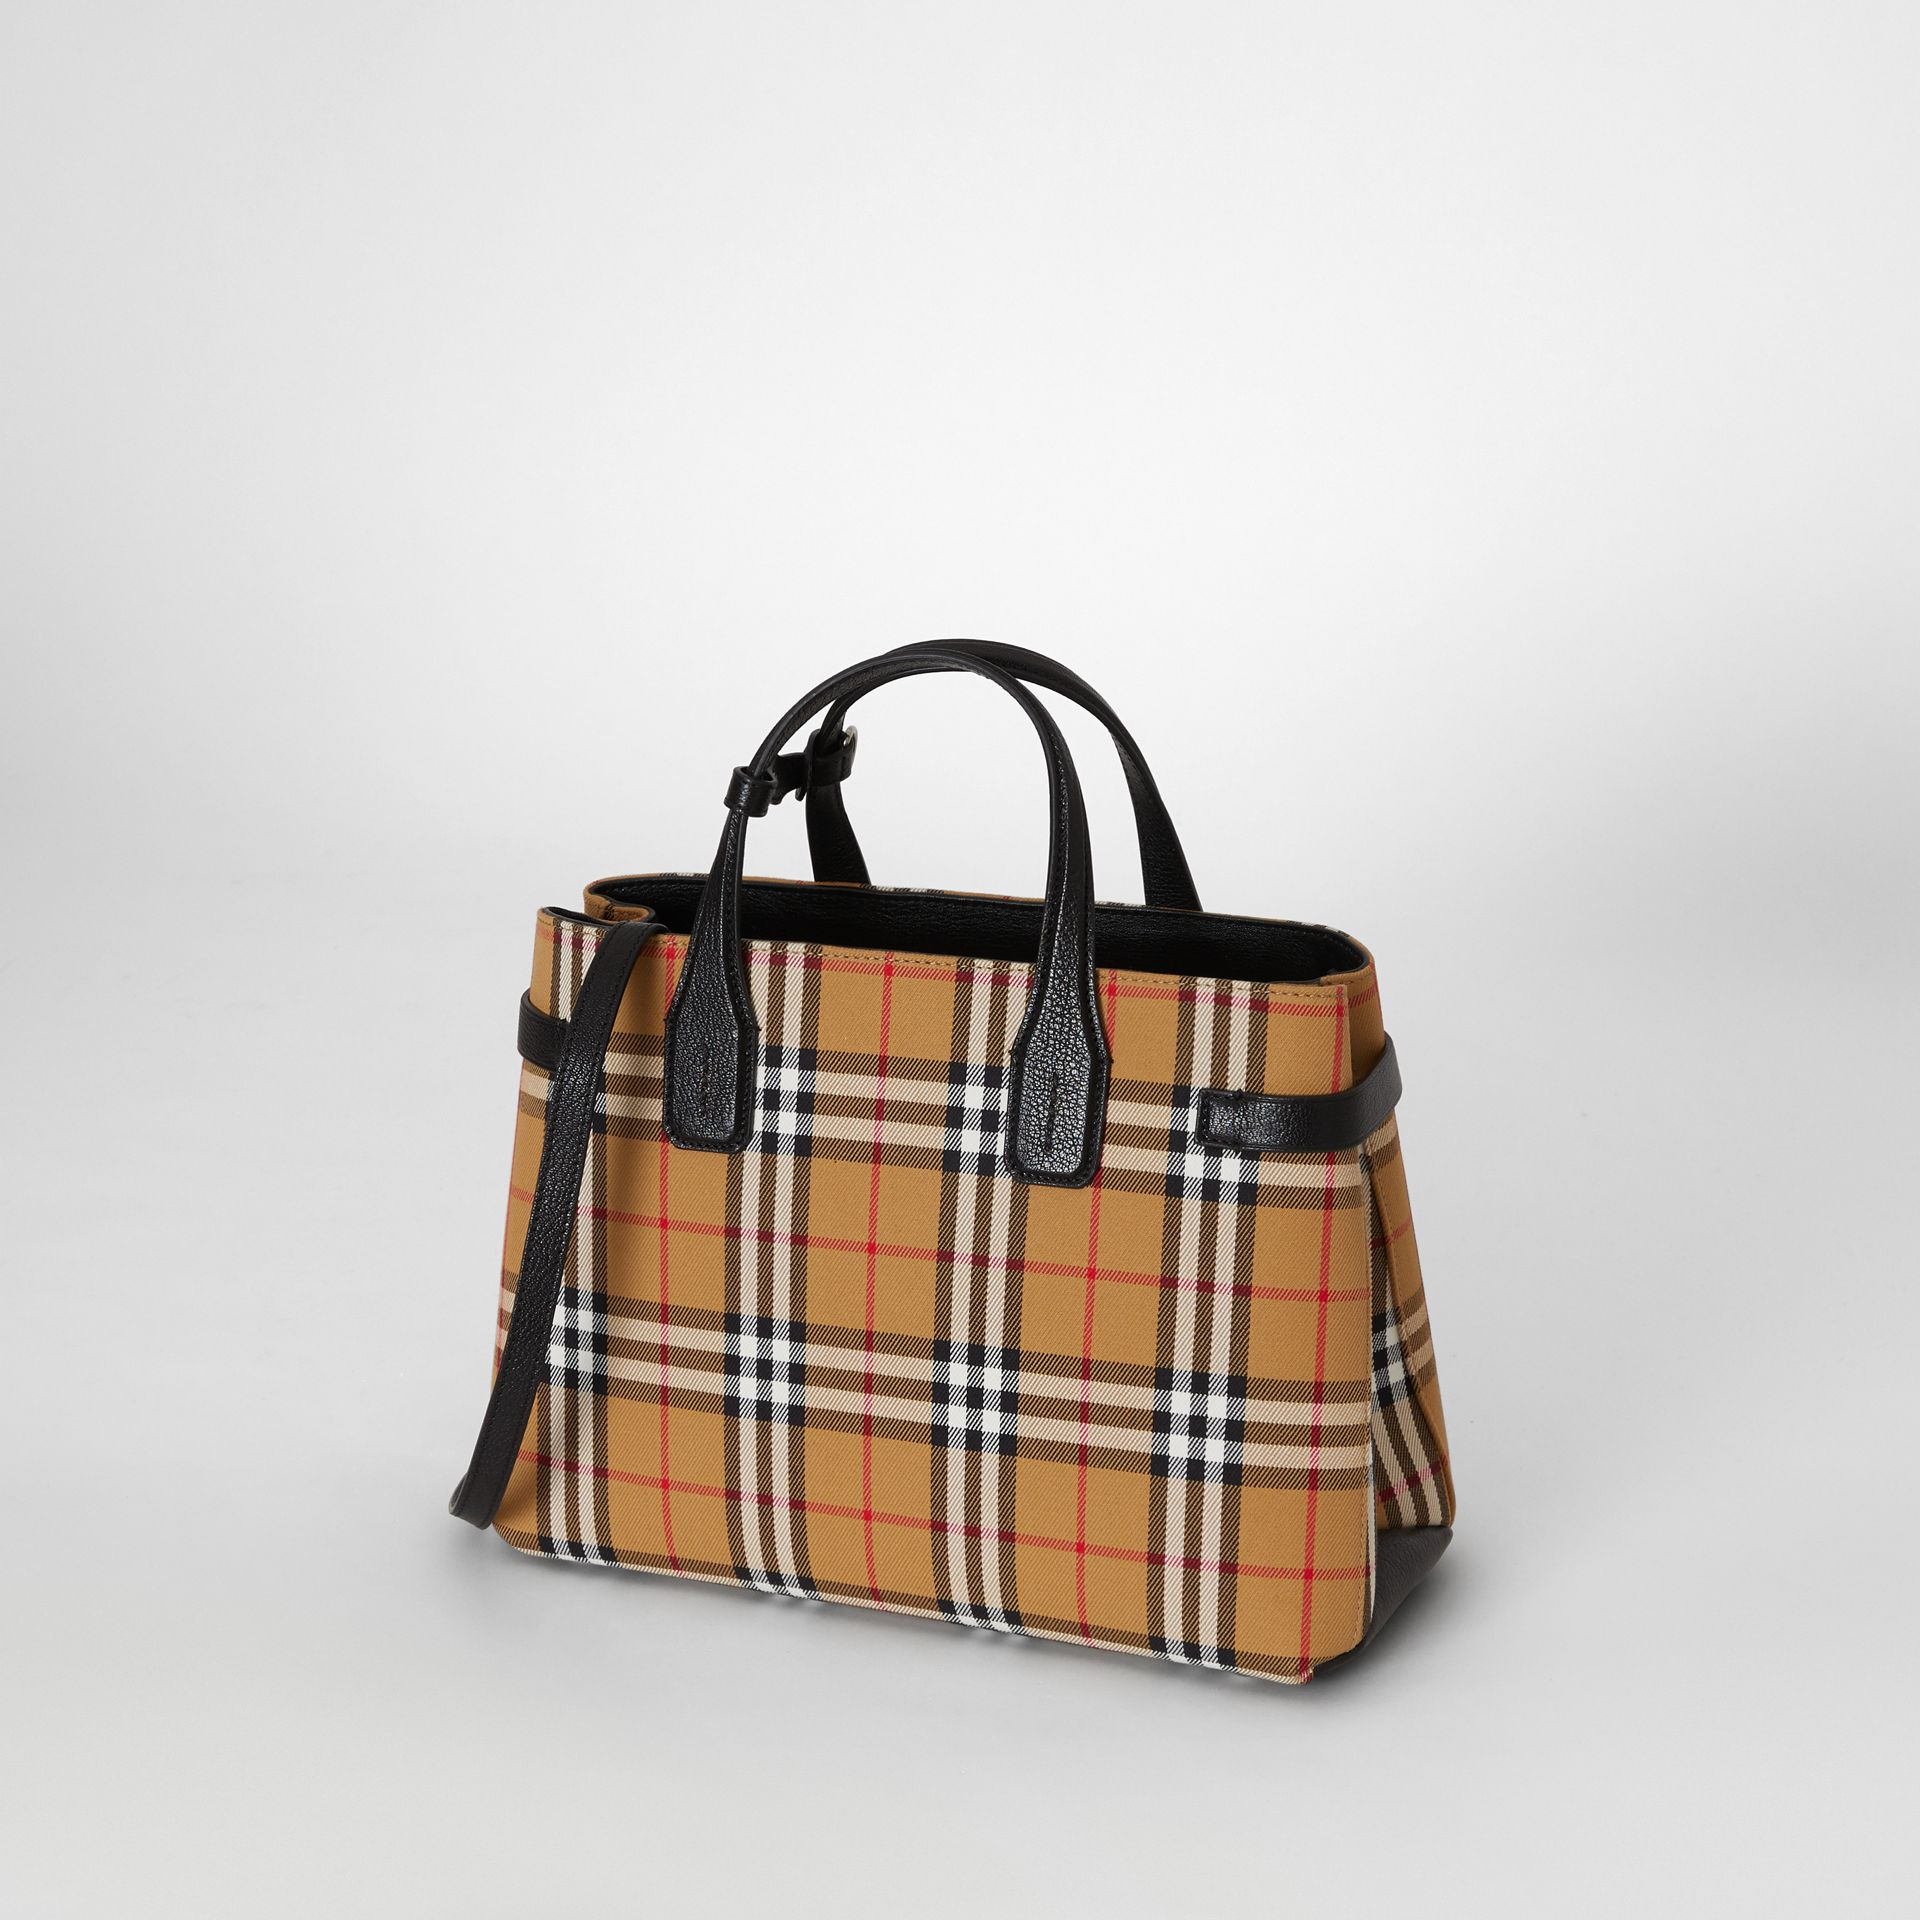 Sac The Banner moyen en cuir et Vintage check (Noir) - Femme | Burberry Canada - photo de la galerie 3